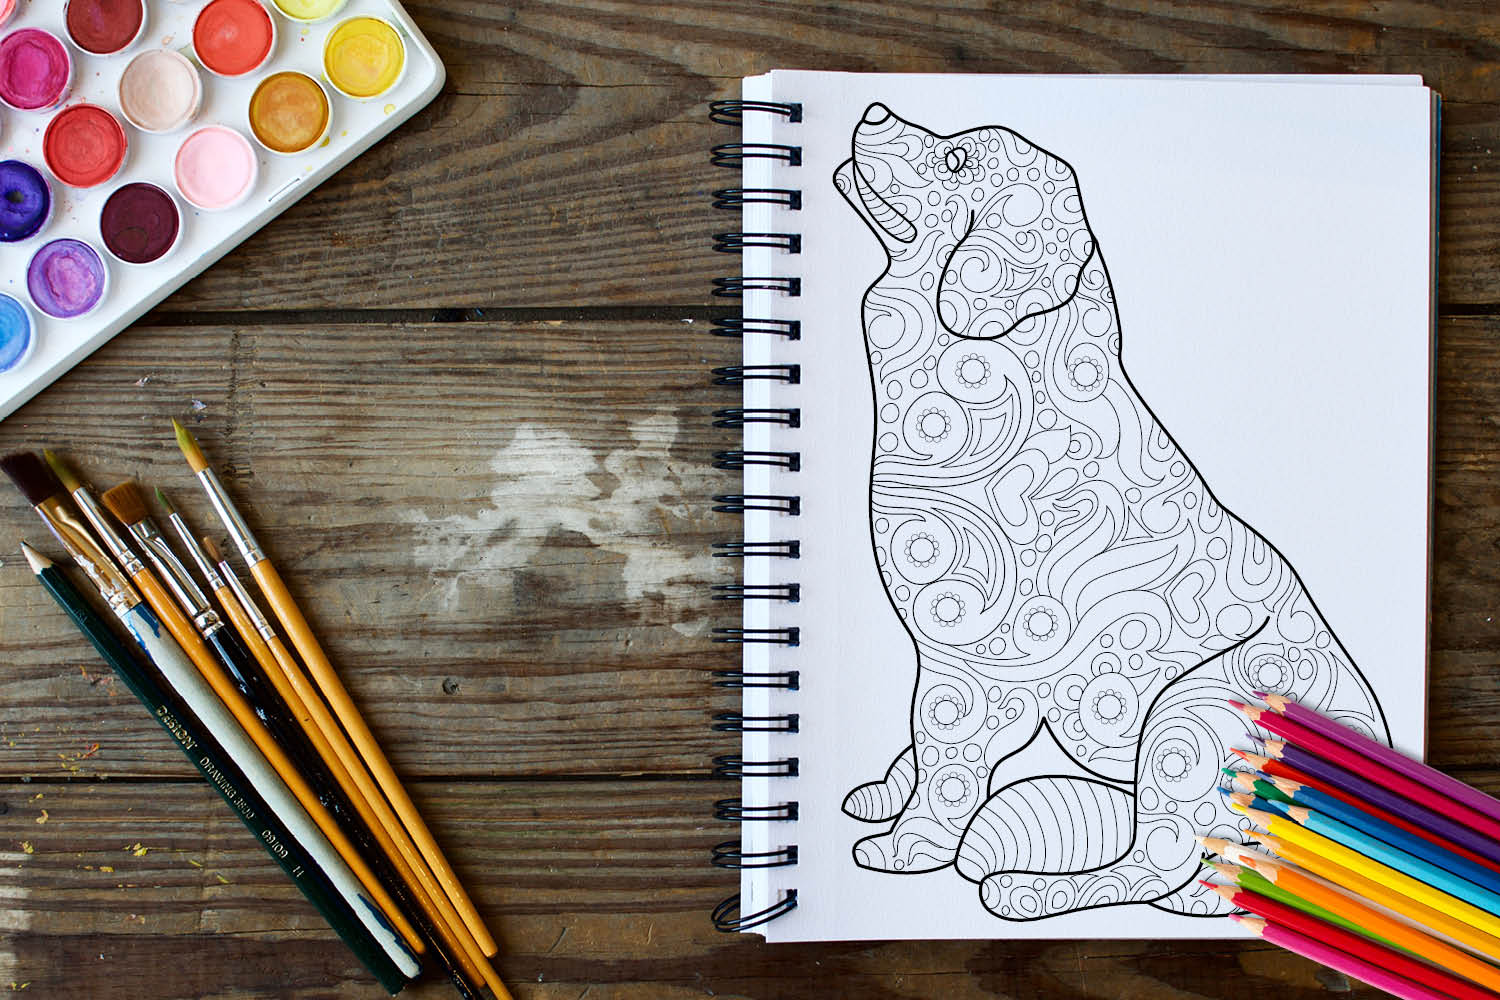 Dogs and Puppies Coloring Book - 30 Unique Coloring Pages example image 2